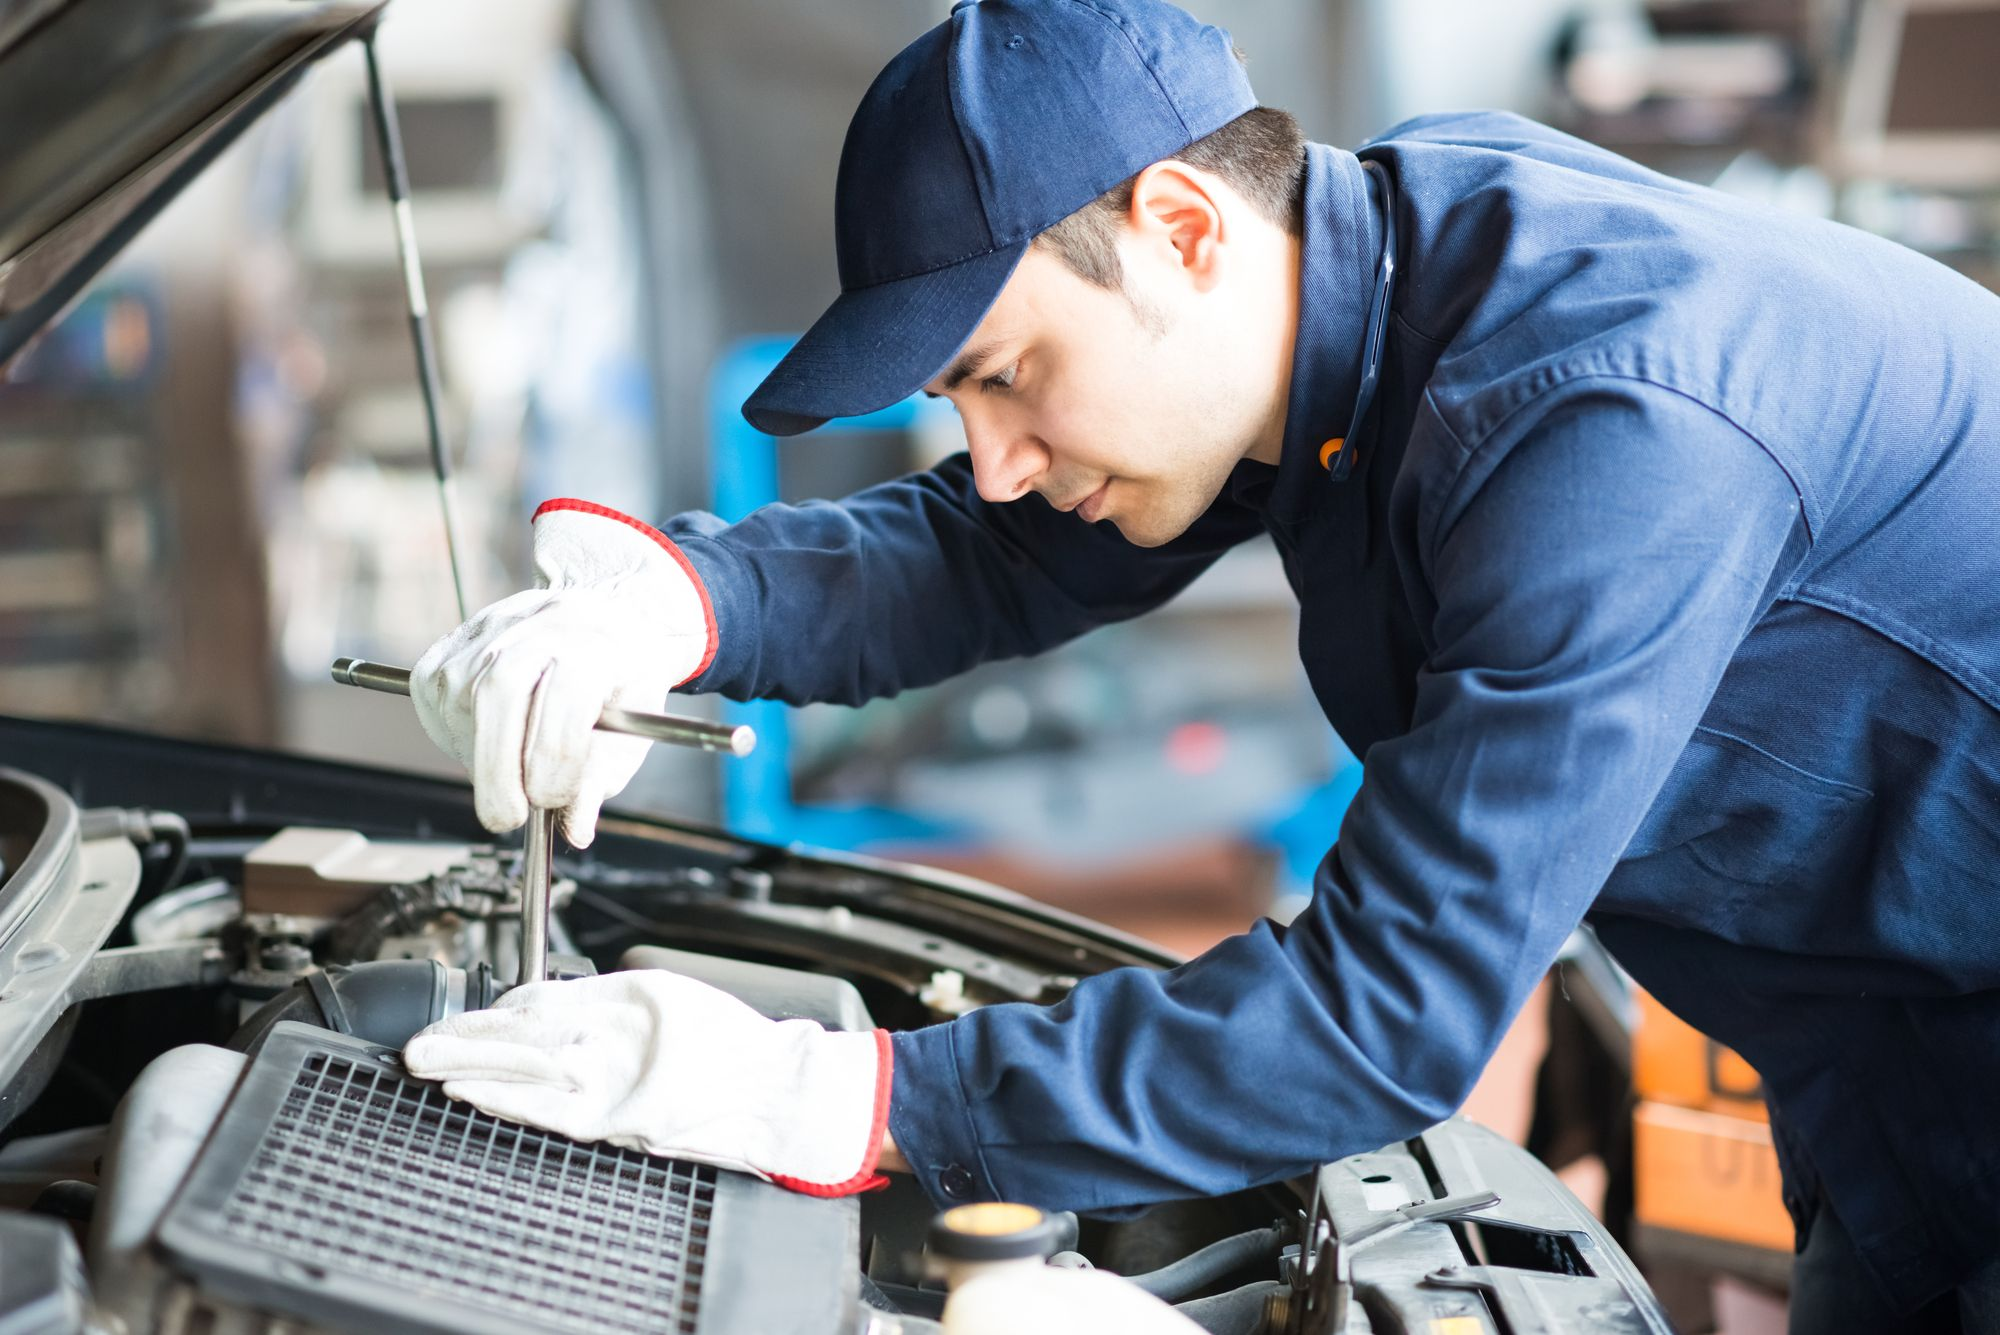 The Do's and Don'ts of Auto Repair